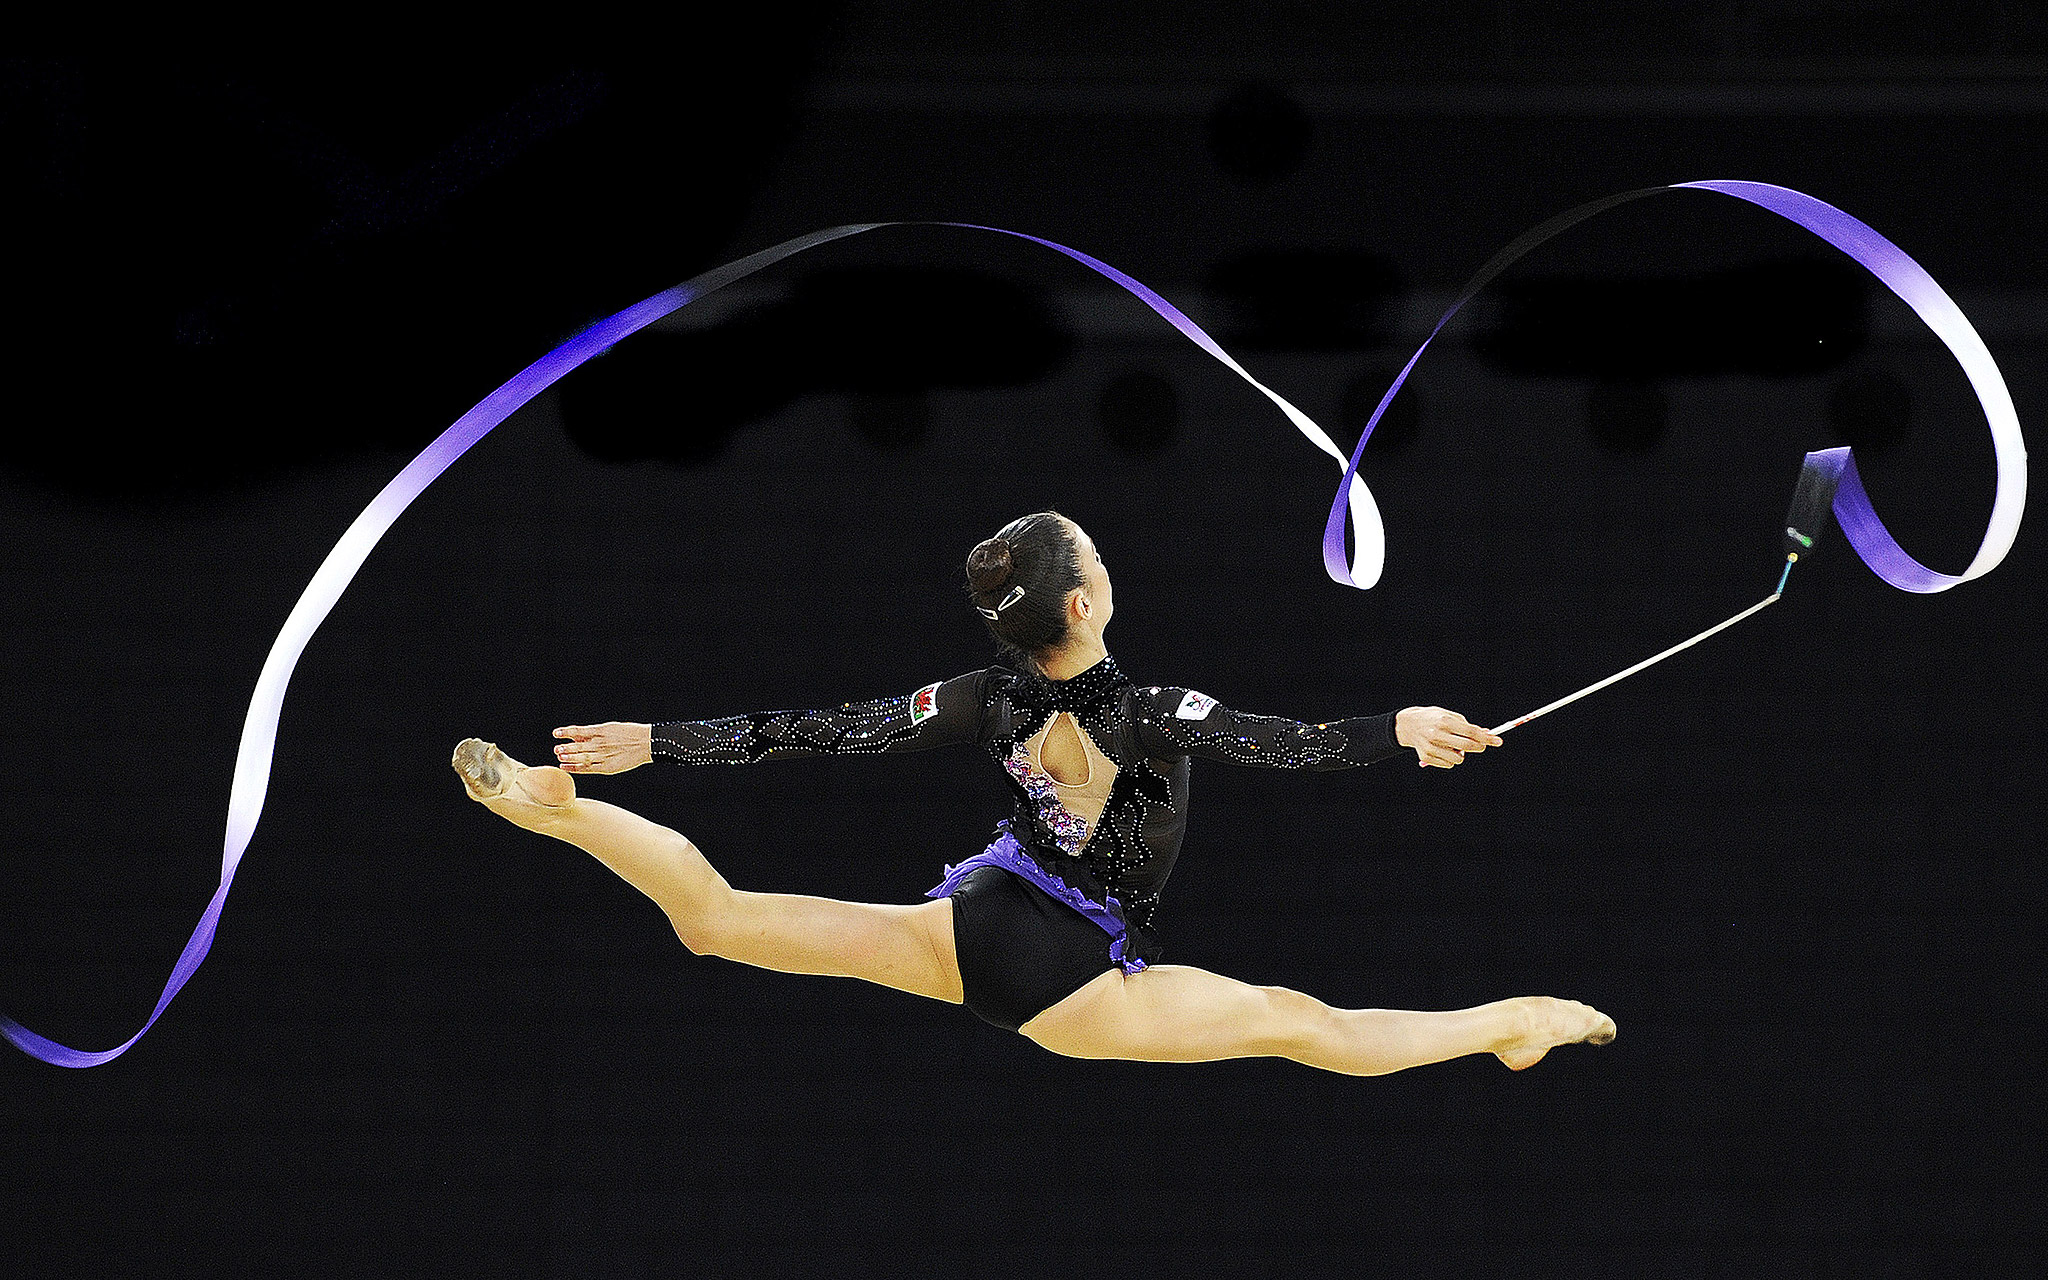 Wales' Laura Halford competes in the women's rhythmic gymnastics individual ribbon final at the Commonwealth Games in Glasgow, Scotland.